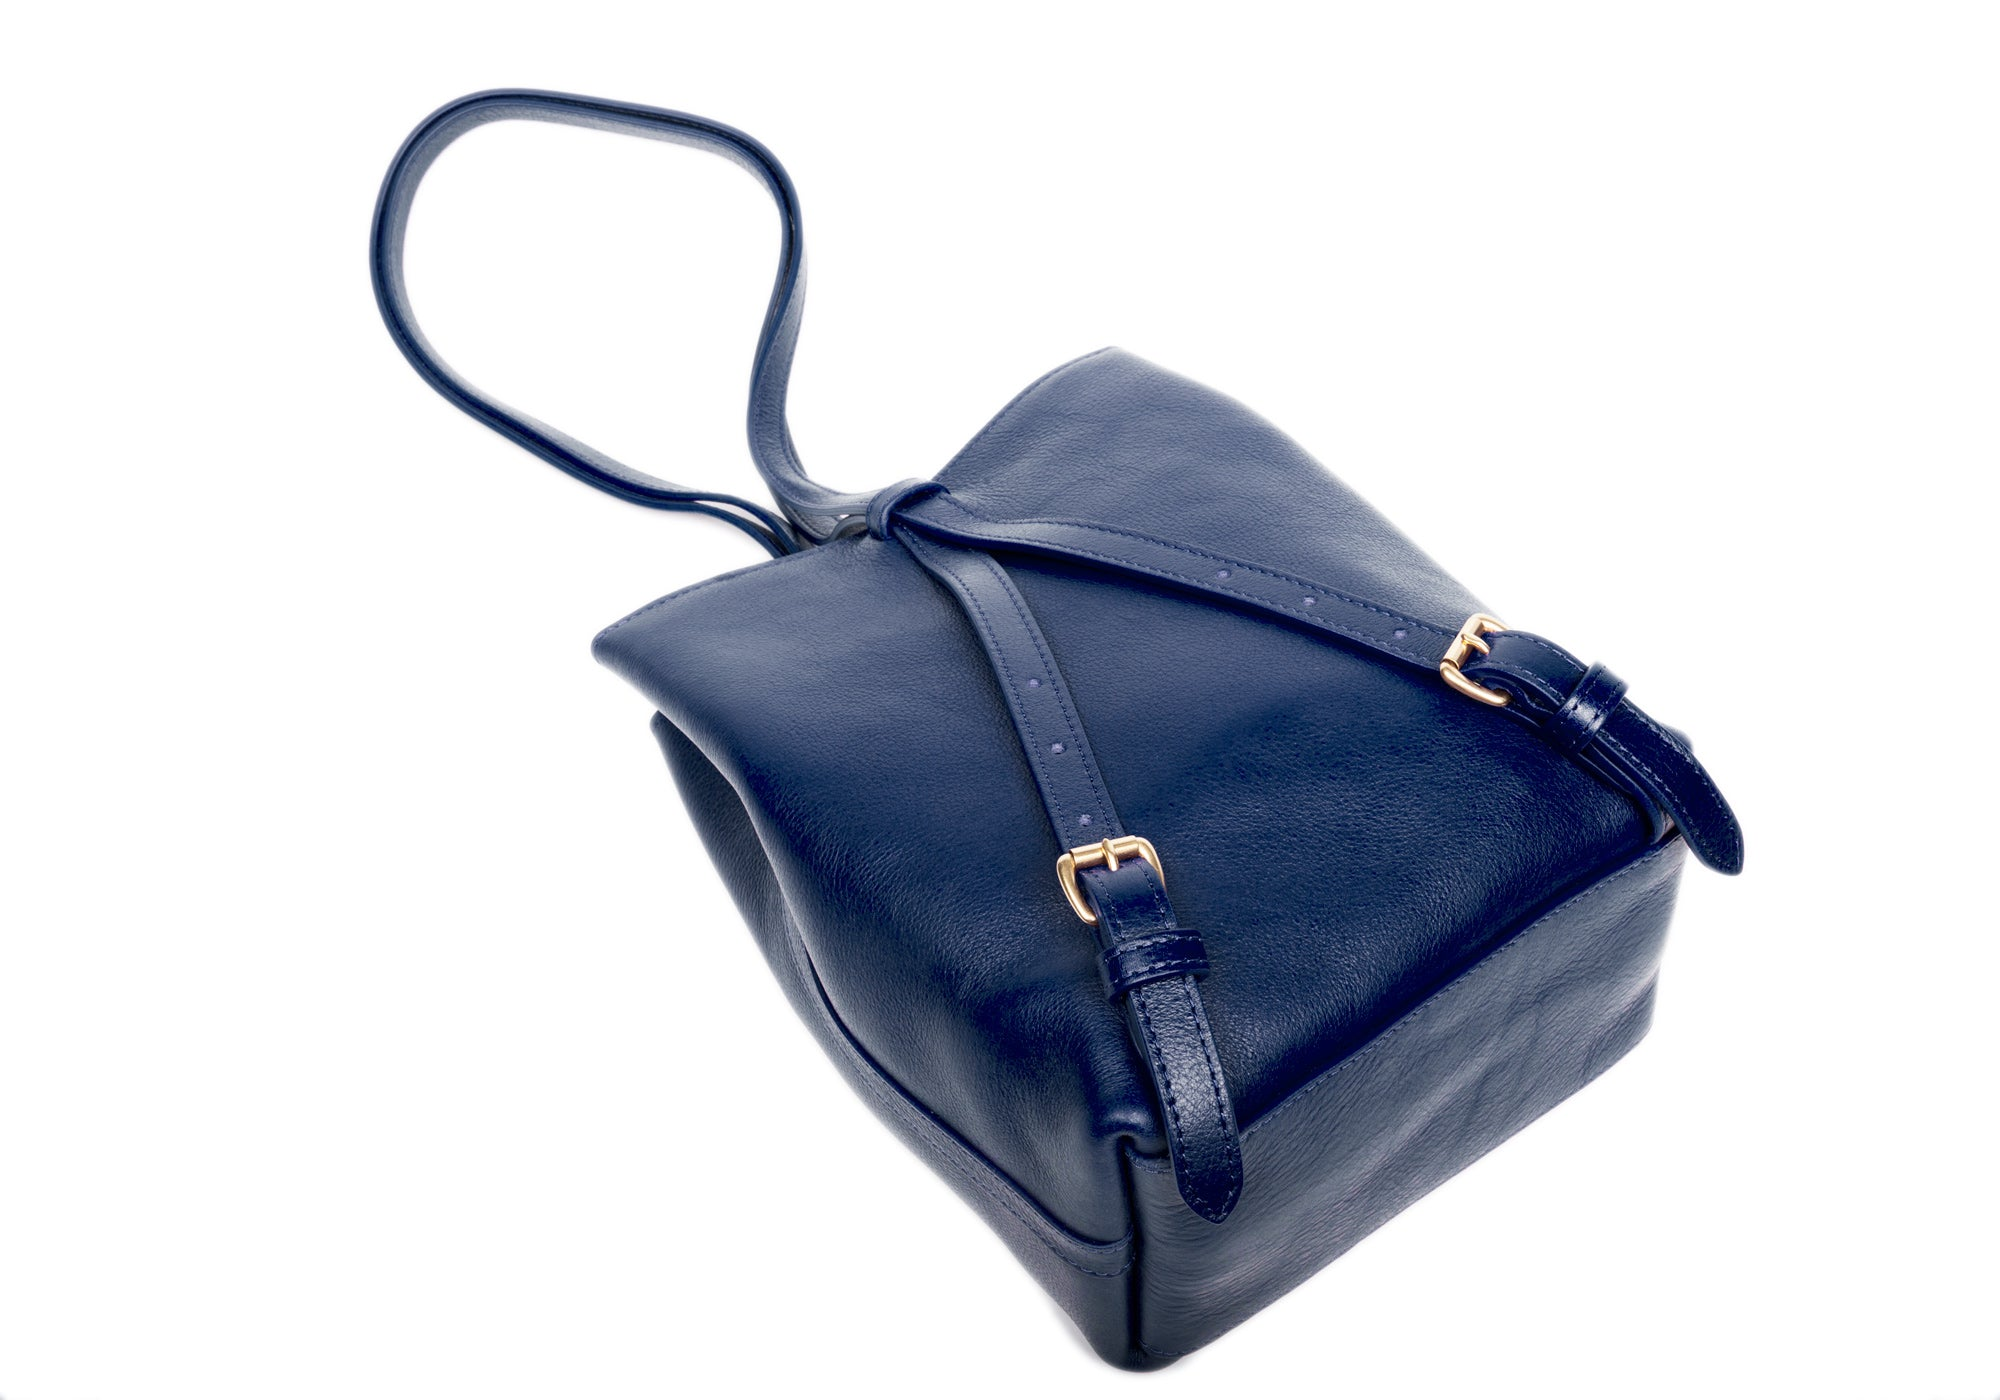 The Mini Sling Backpack Indigo